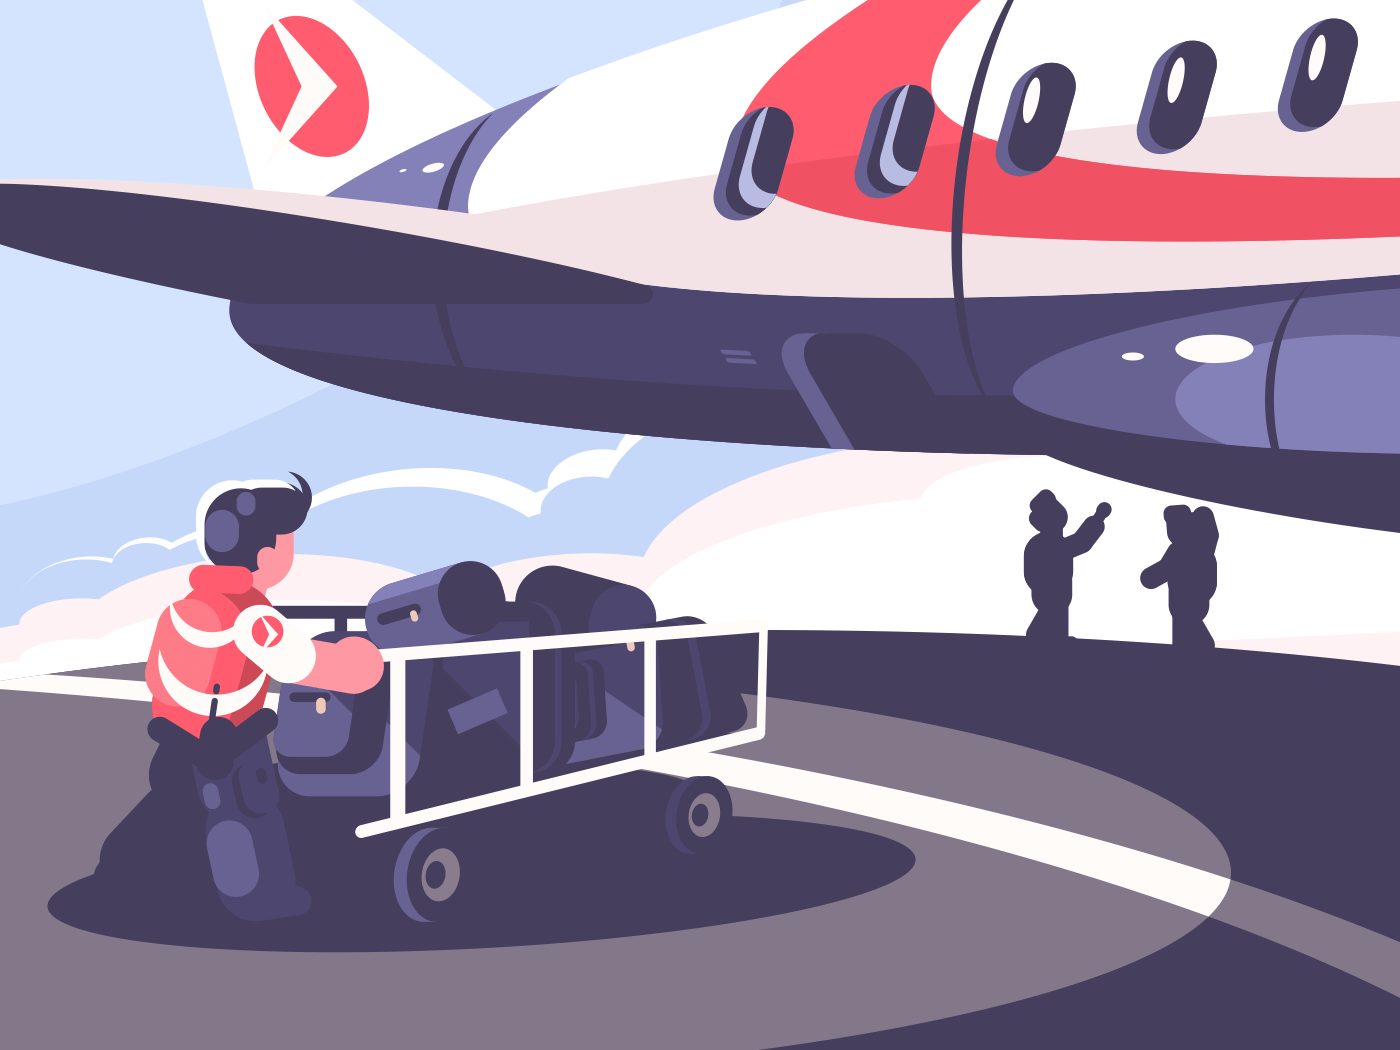 Loading of luggage in plane. Airport employee with baggage cart. Vector illustration